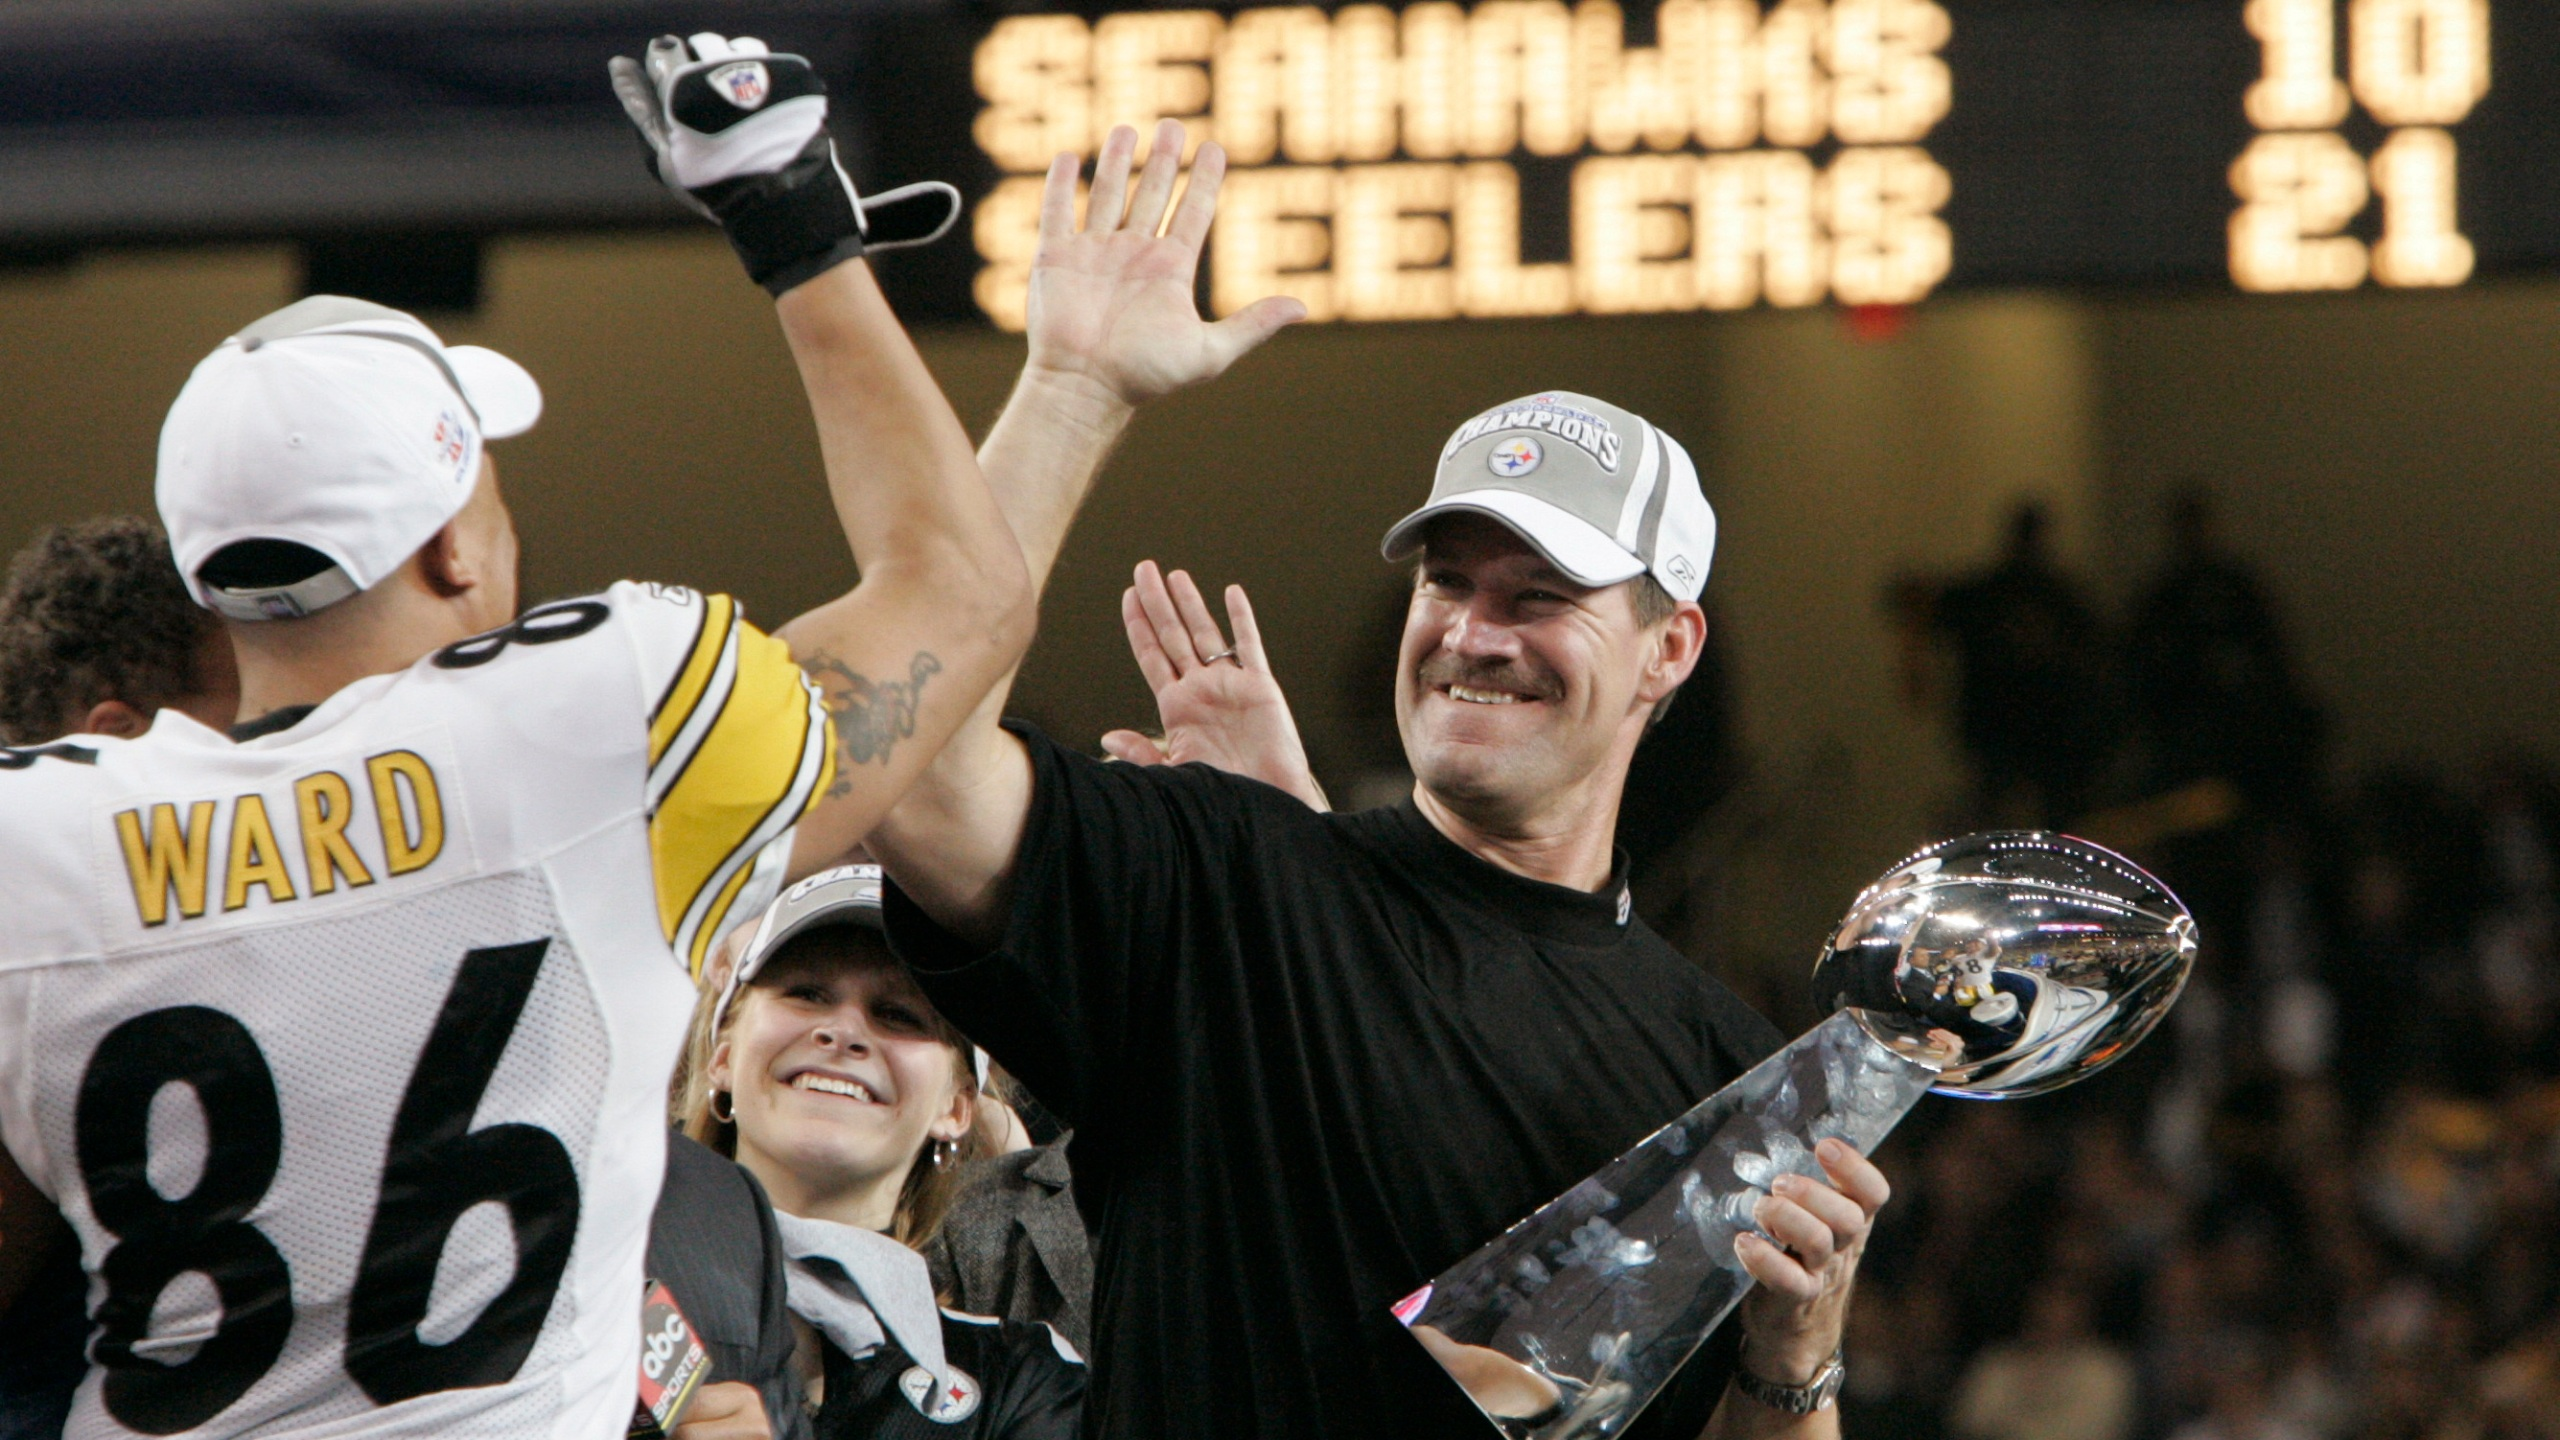 FORD FIELD SEATTLE SEAHAWKS PITTSBURGH STEELERS COWHER WARD